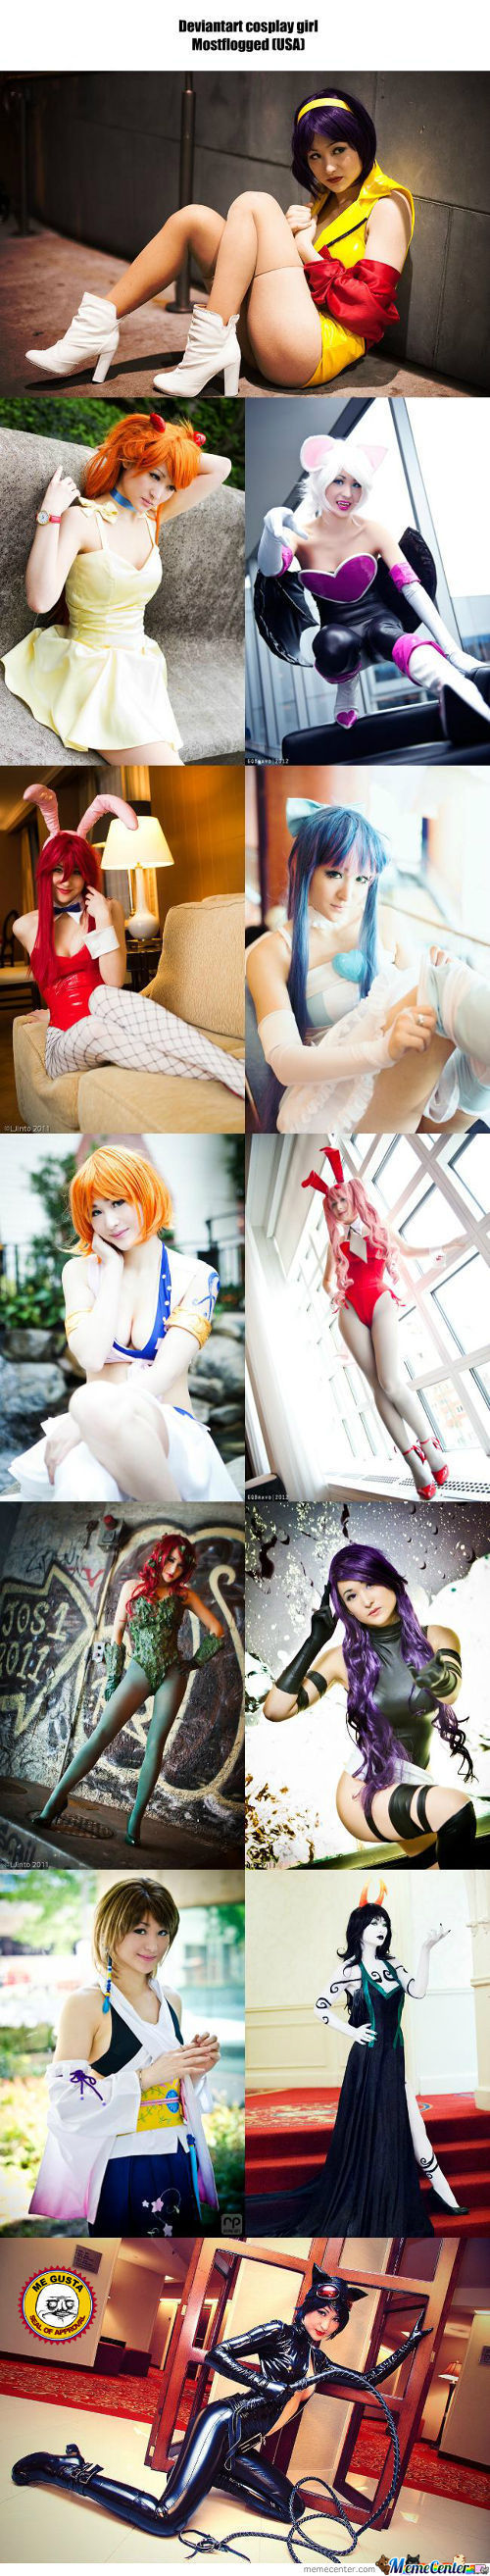 Cosplay Girl 43 : Mostflogged (Usa)